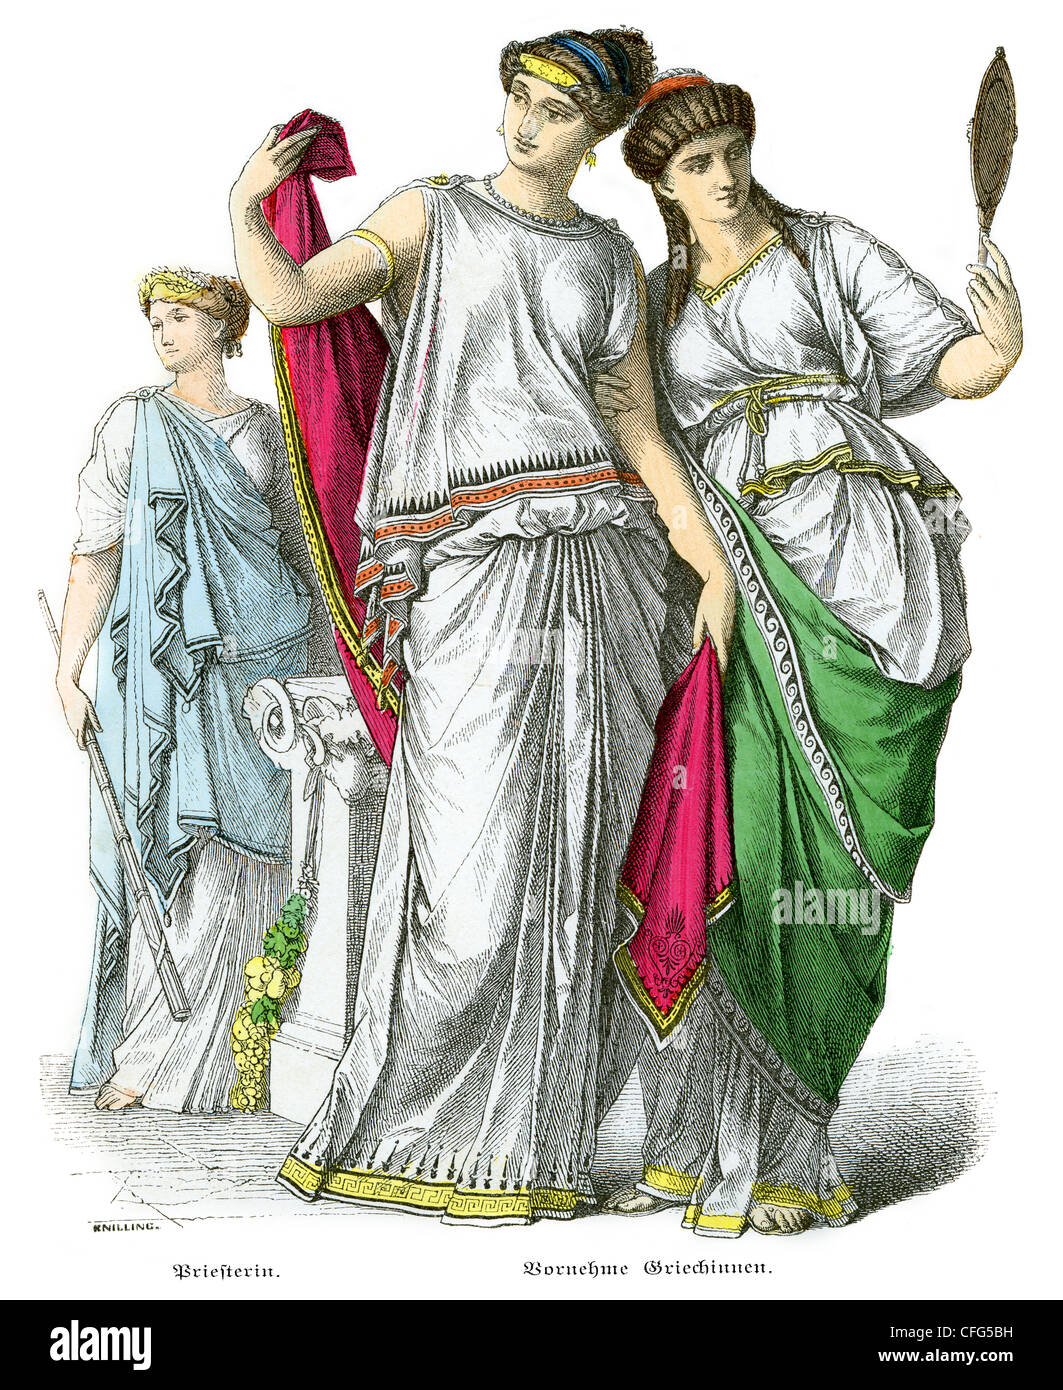 Ancient Greek Priestess and Noble Women - Stock Image